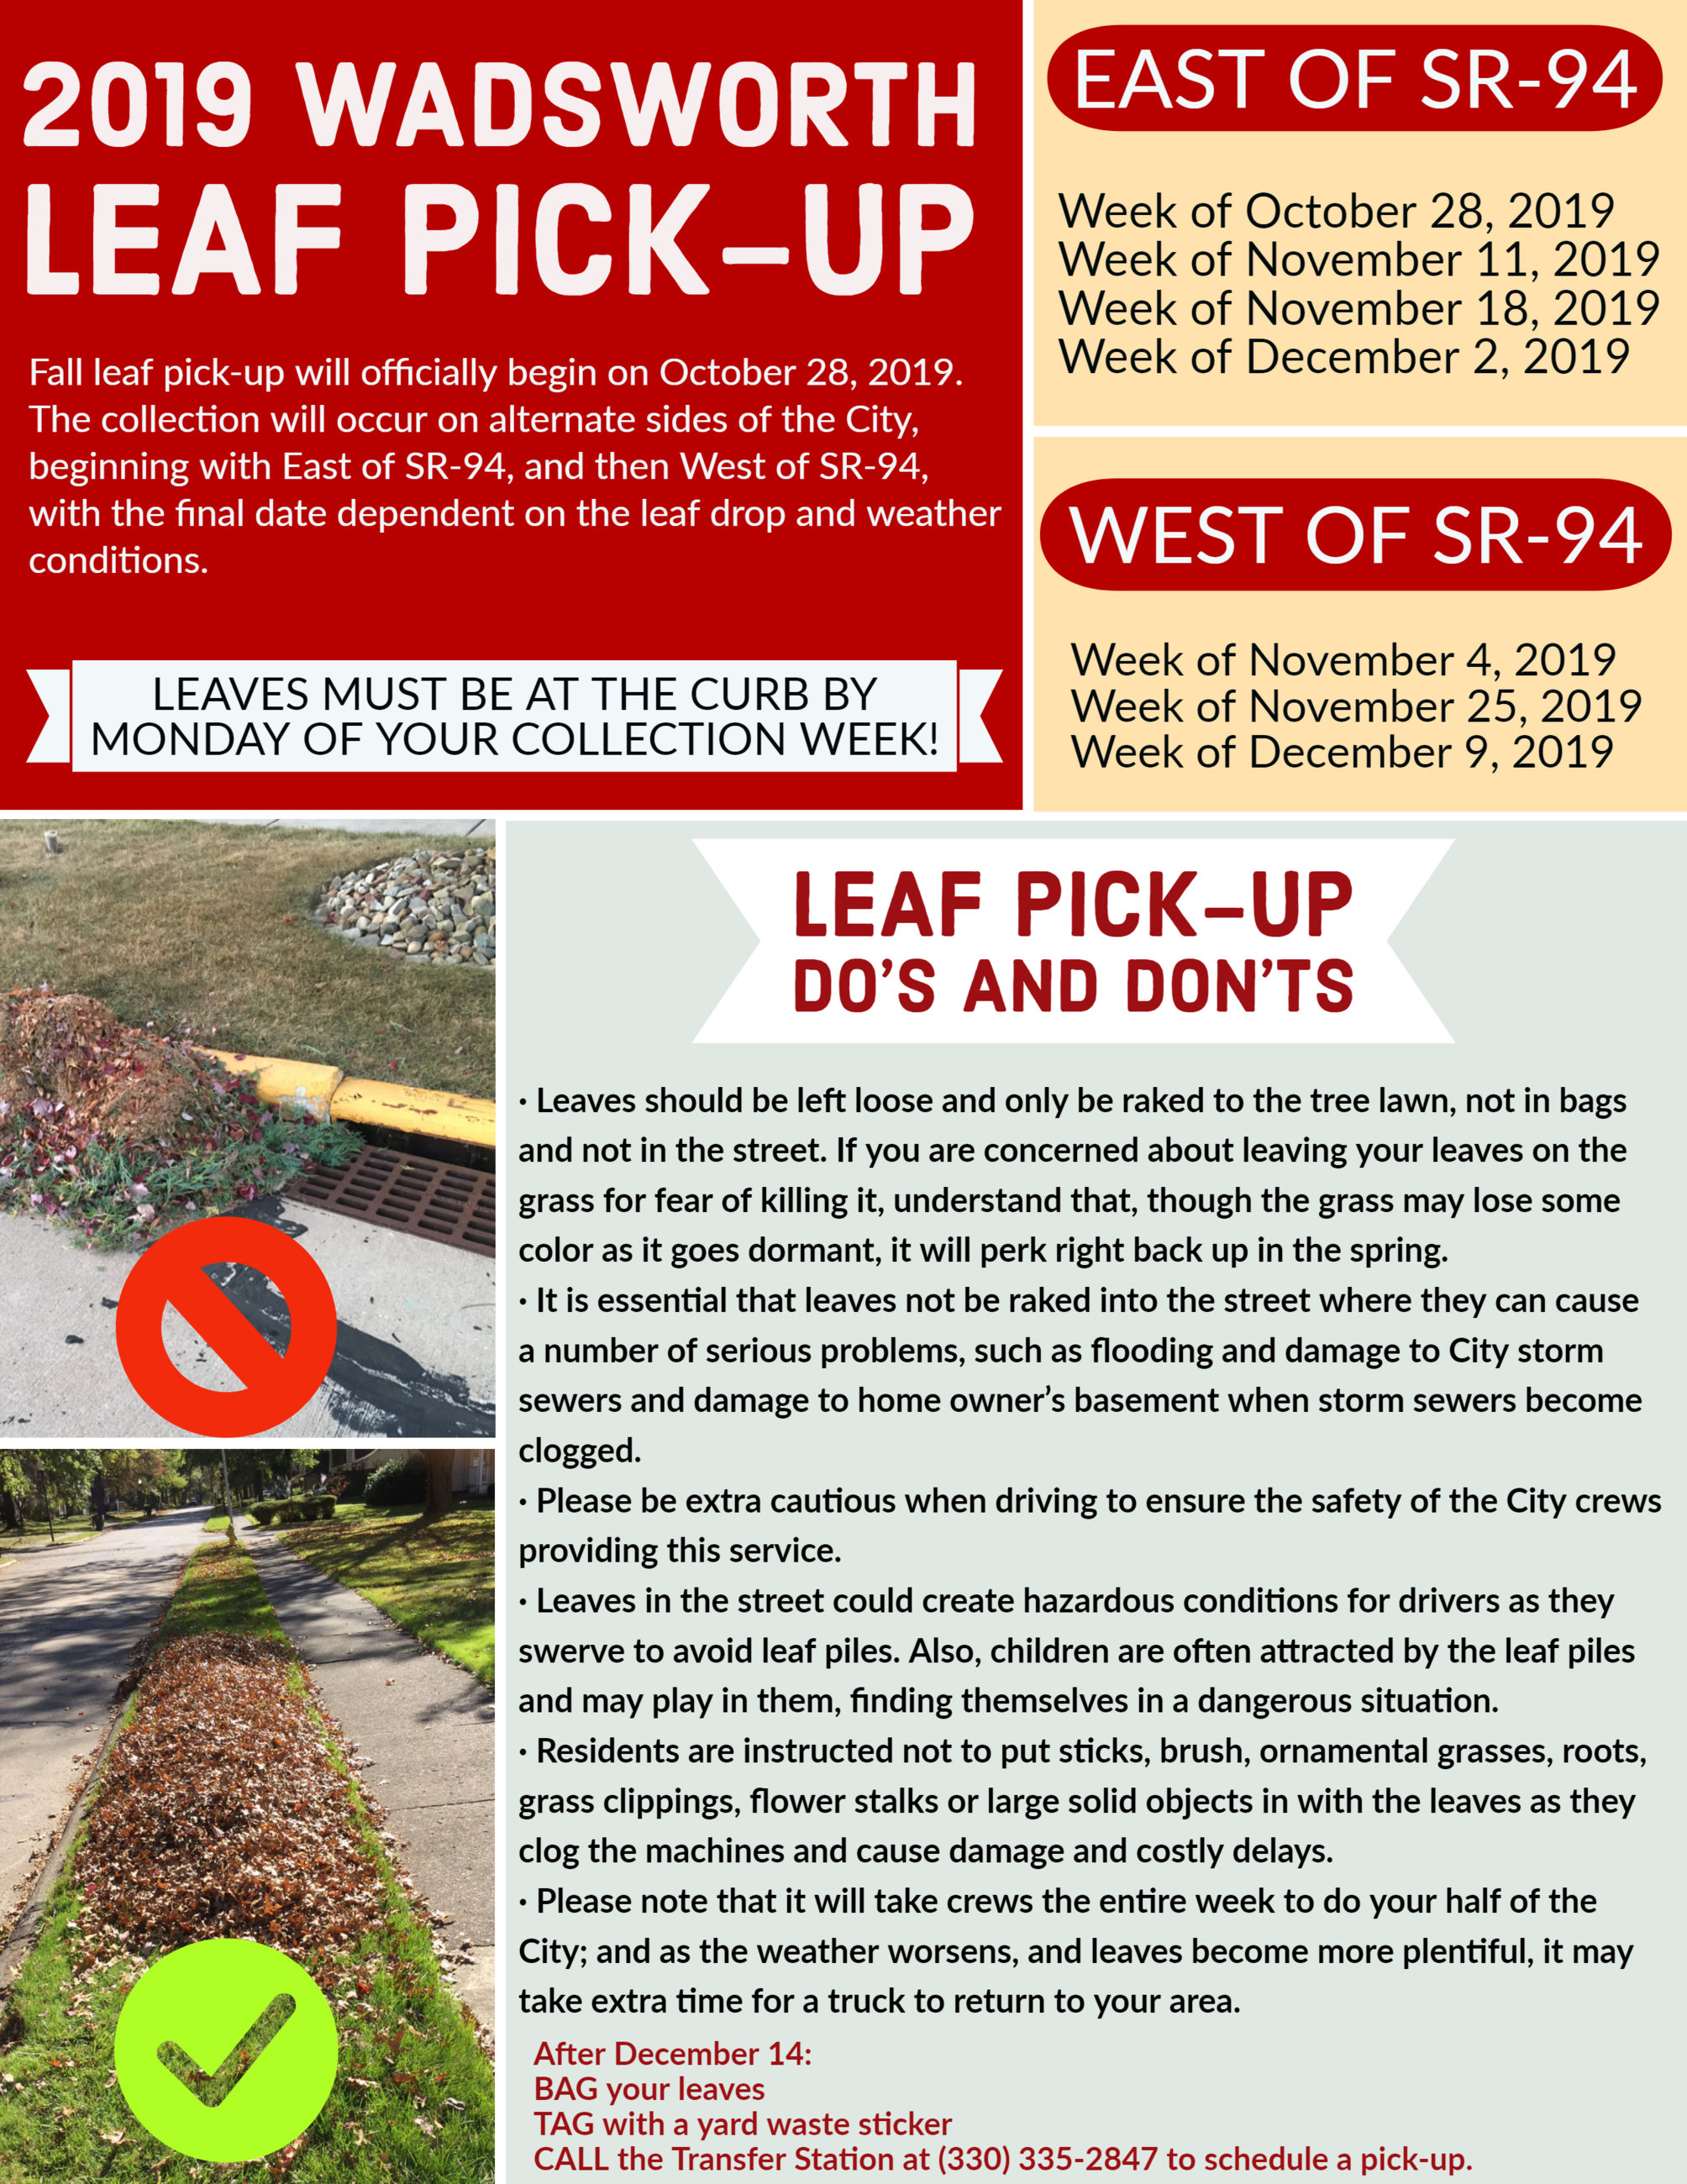 Leaf Pick-Up Dos and Donts Copy